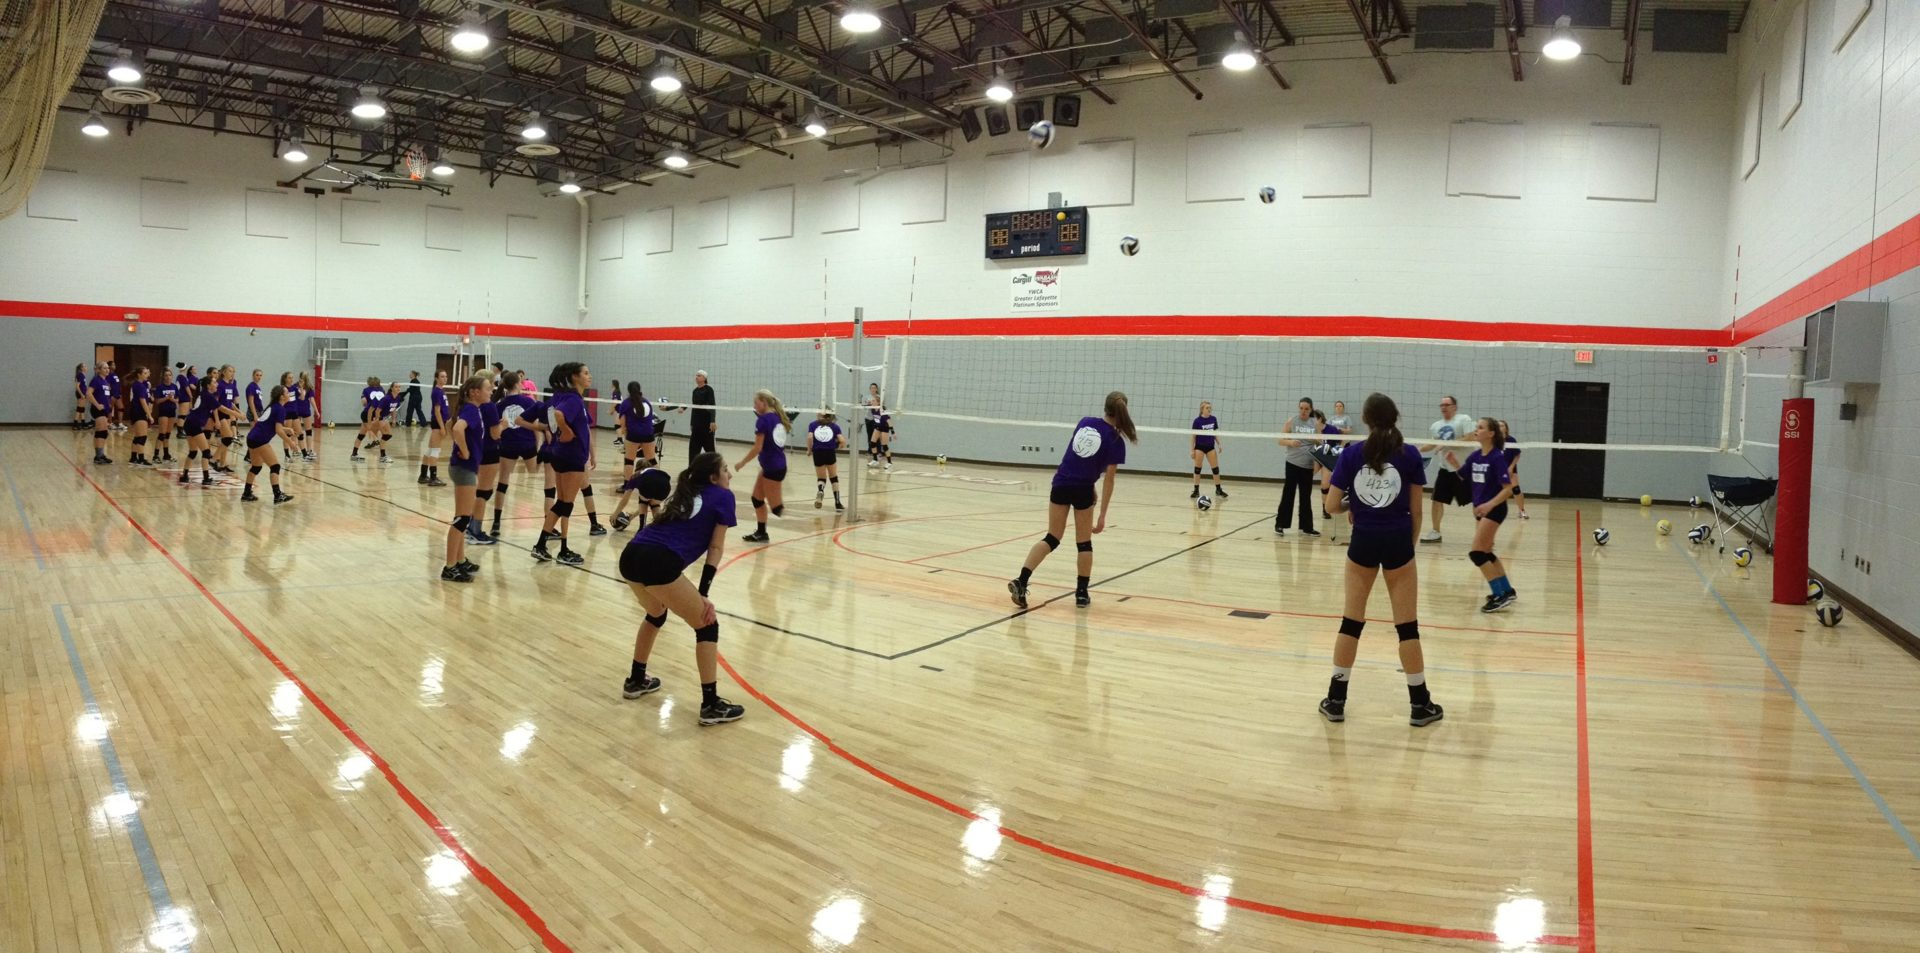 Athletes playing volleyball in the gym